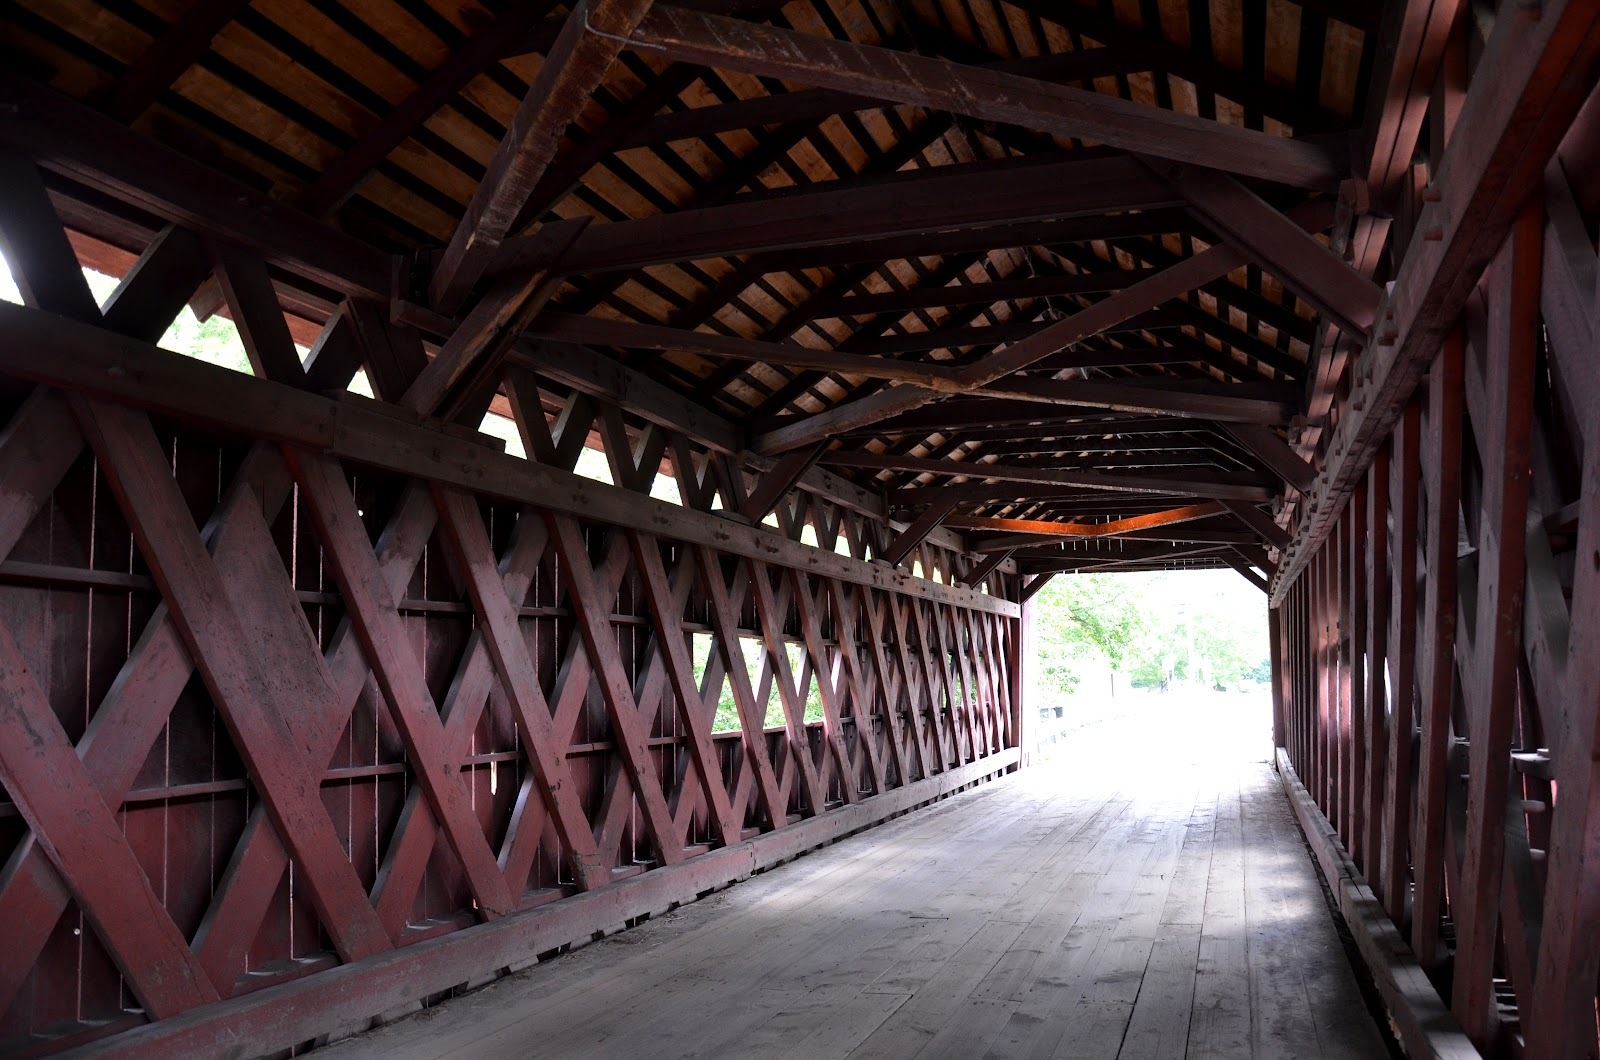 baugh s blog photo essay covered bridges in vermont inside the station bridge in northfield falls vermont note the lattice style design